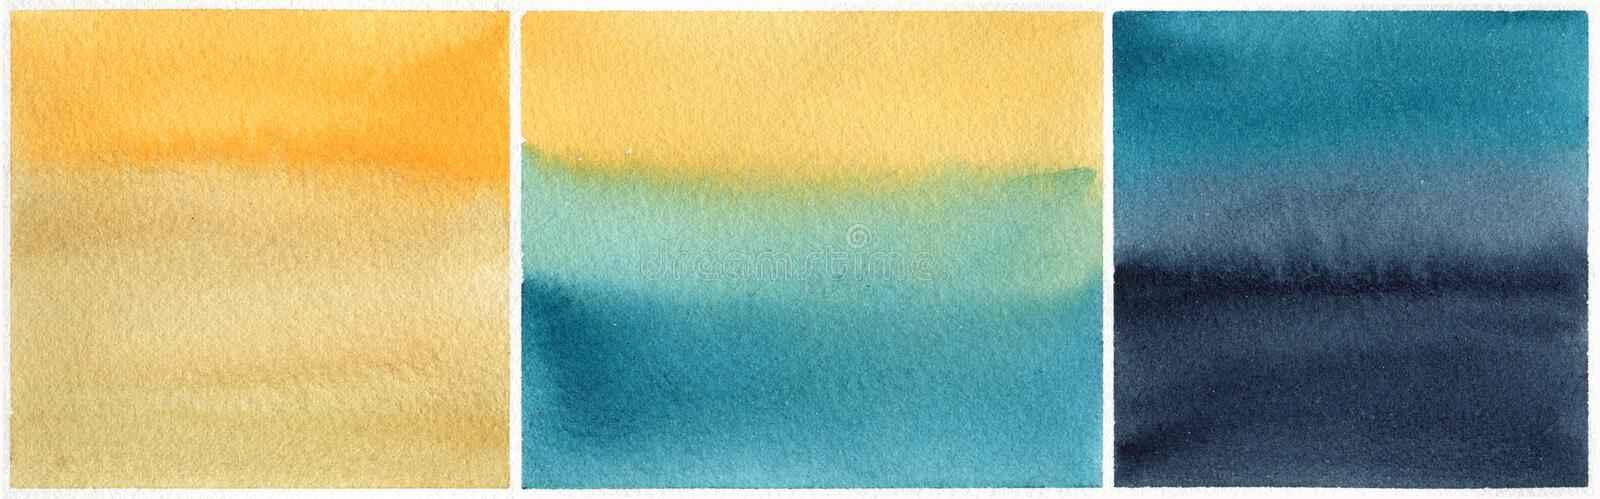 Set of watercolor backgrounds royalty free stock image